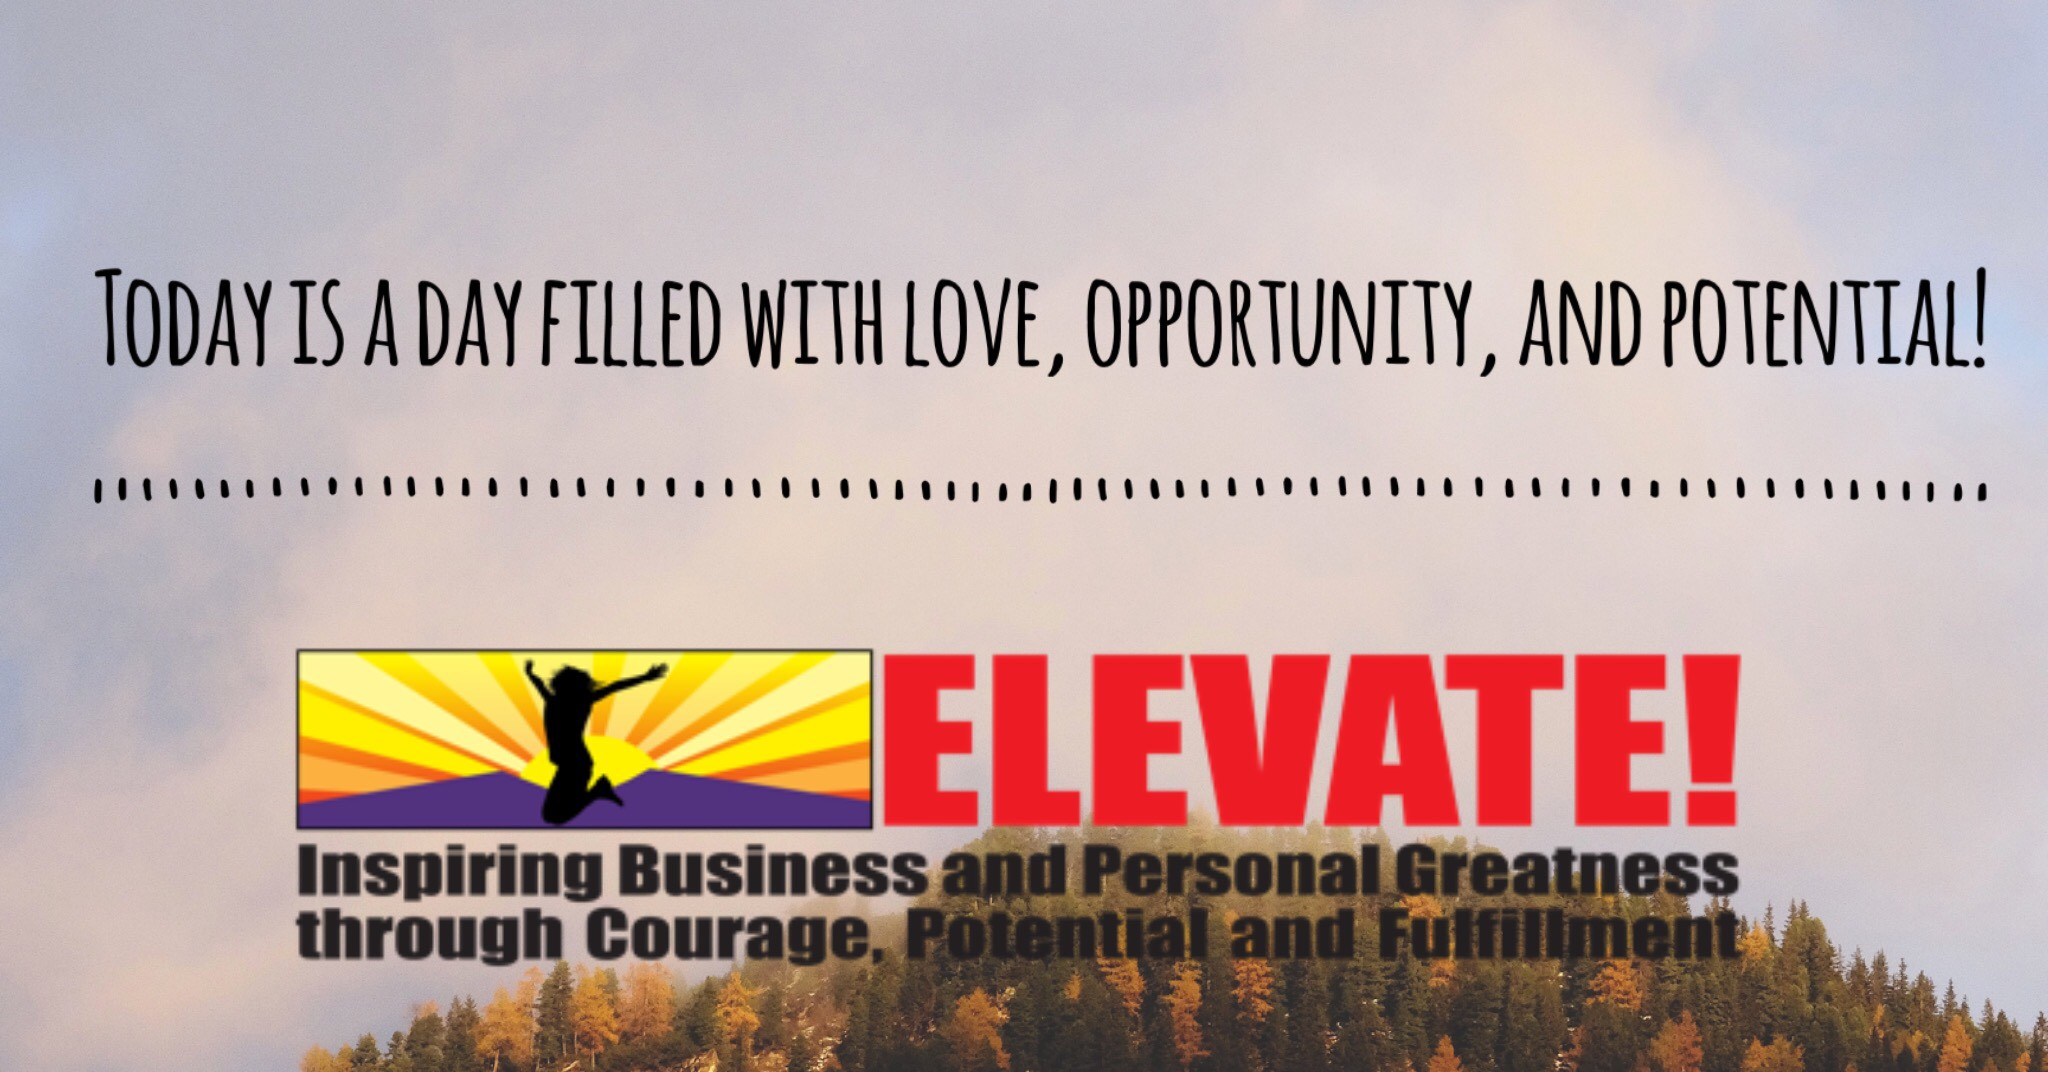 Love and Opportunity